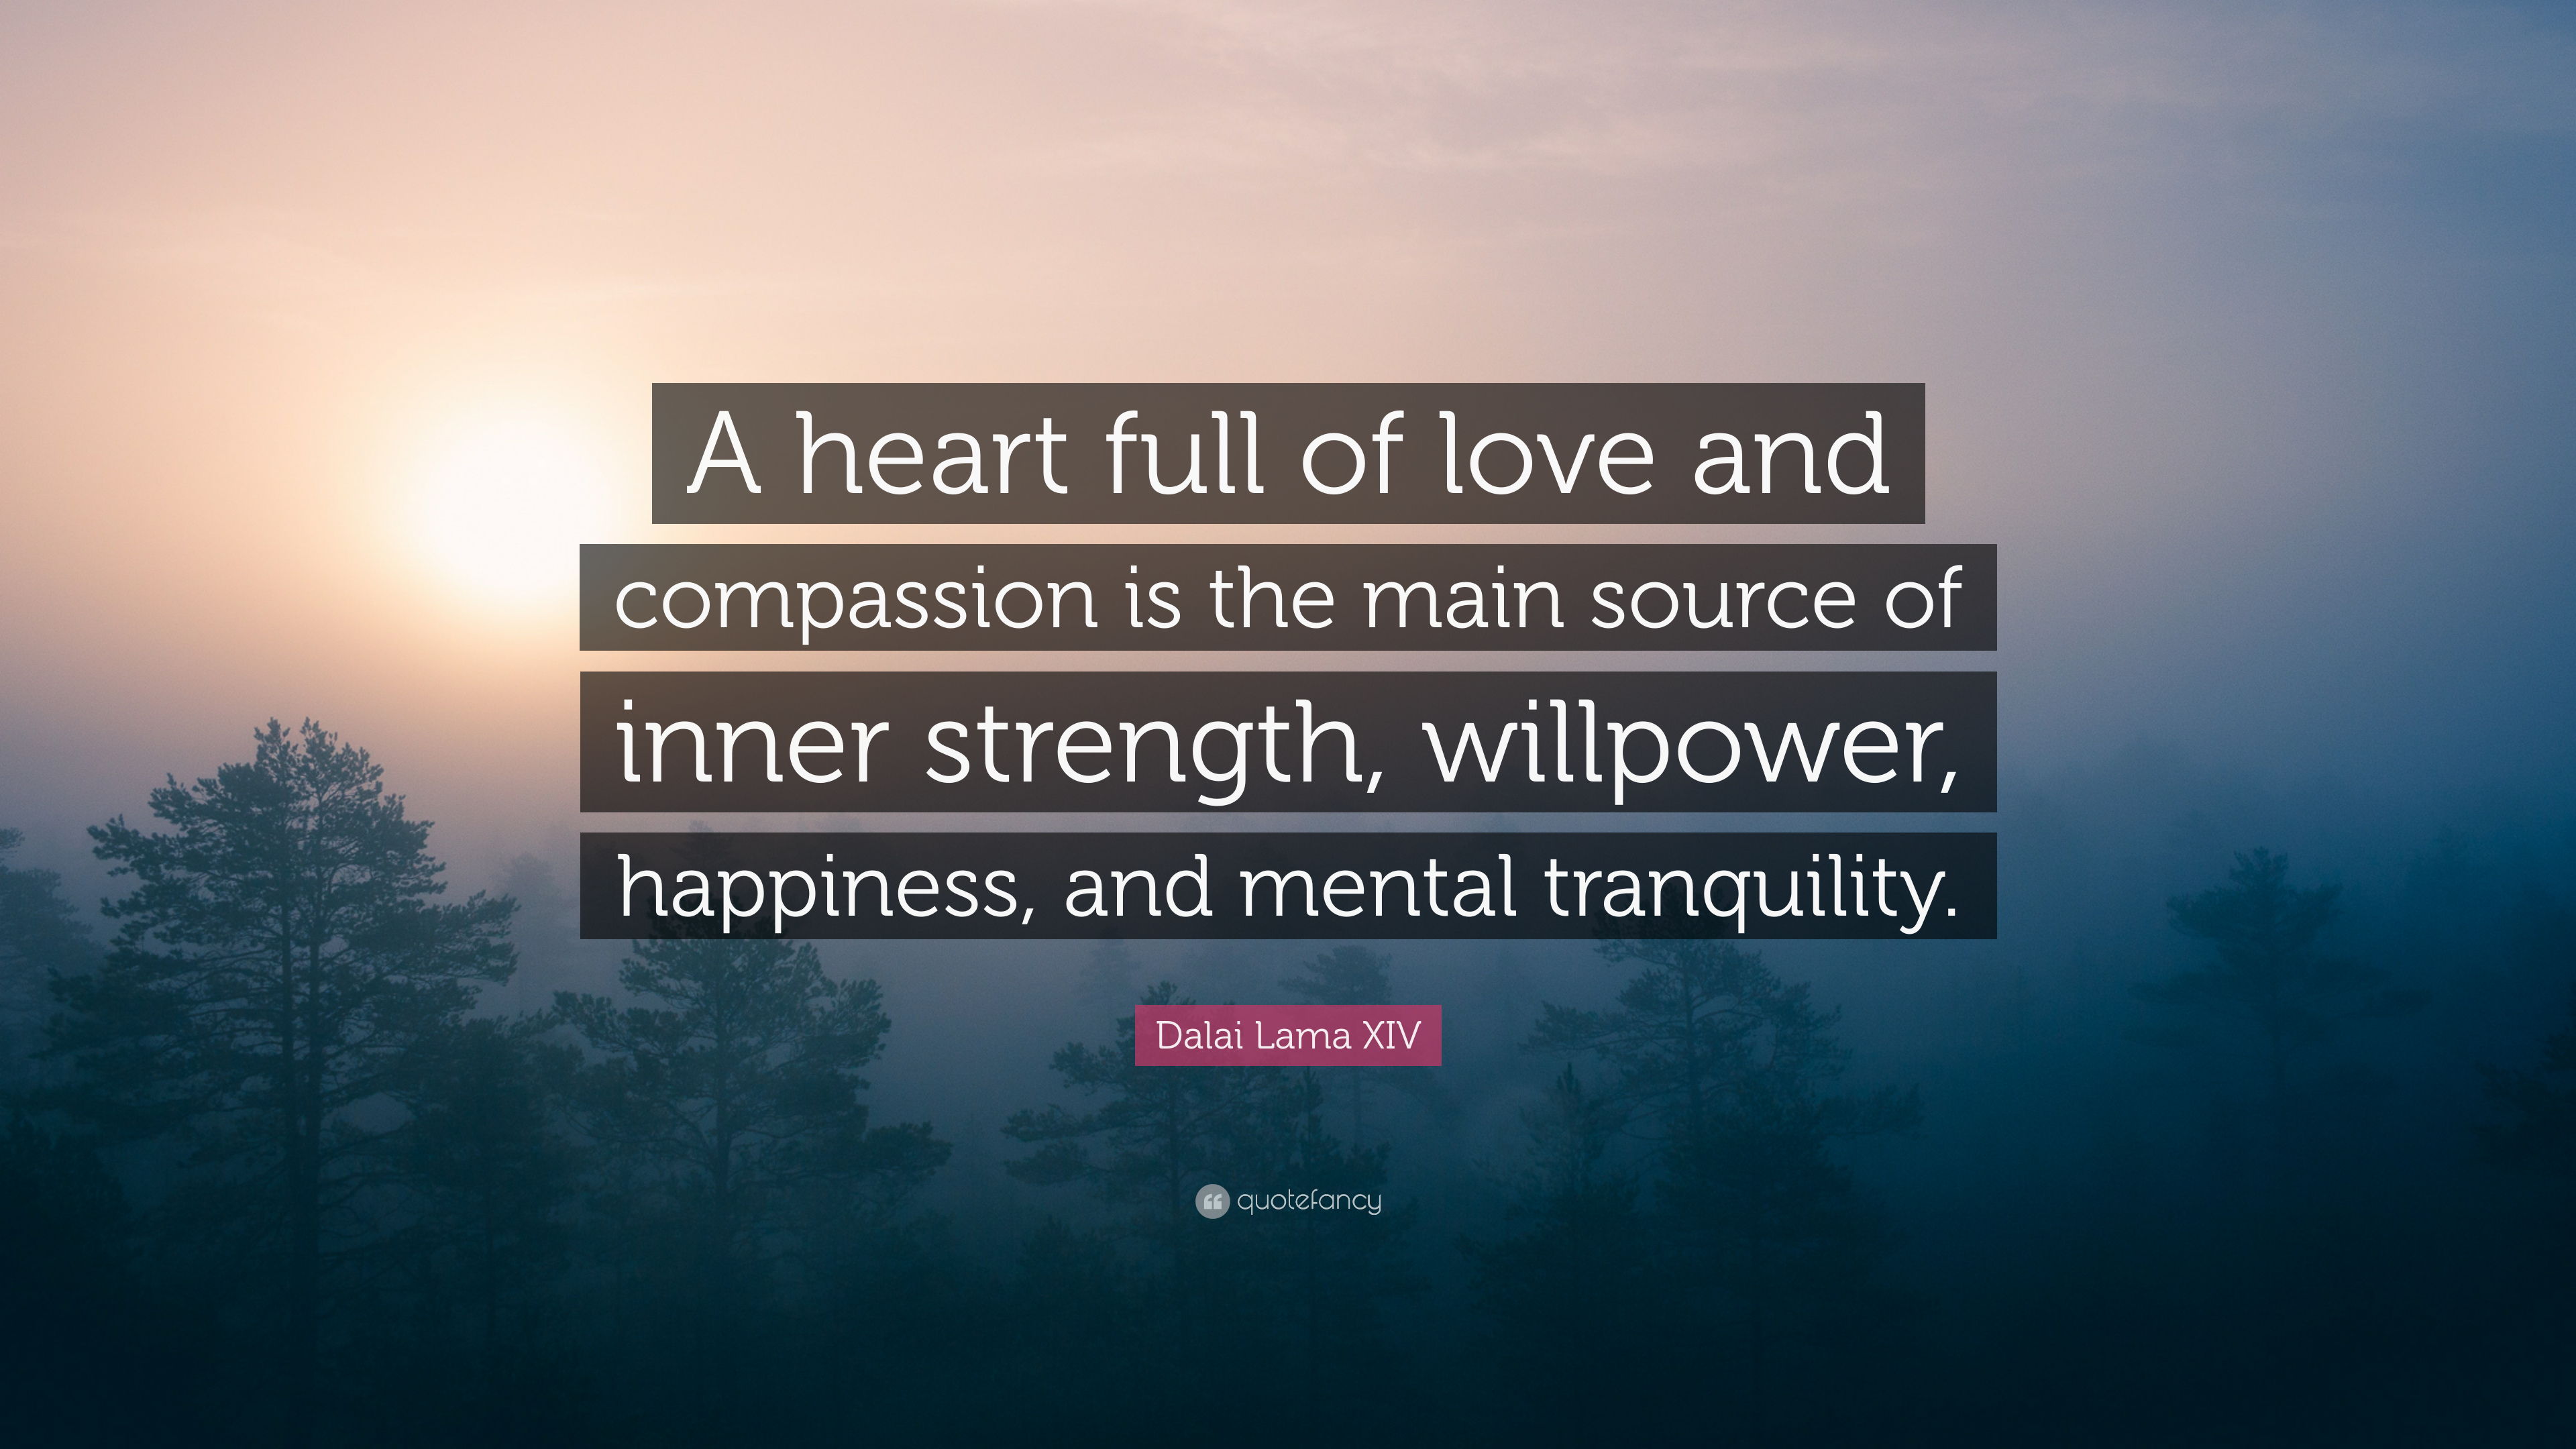 Dalai Lama Quotes Wallpapers Dalai Lama Xiv Quote A Heart Full Of Love And Compassion